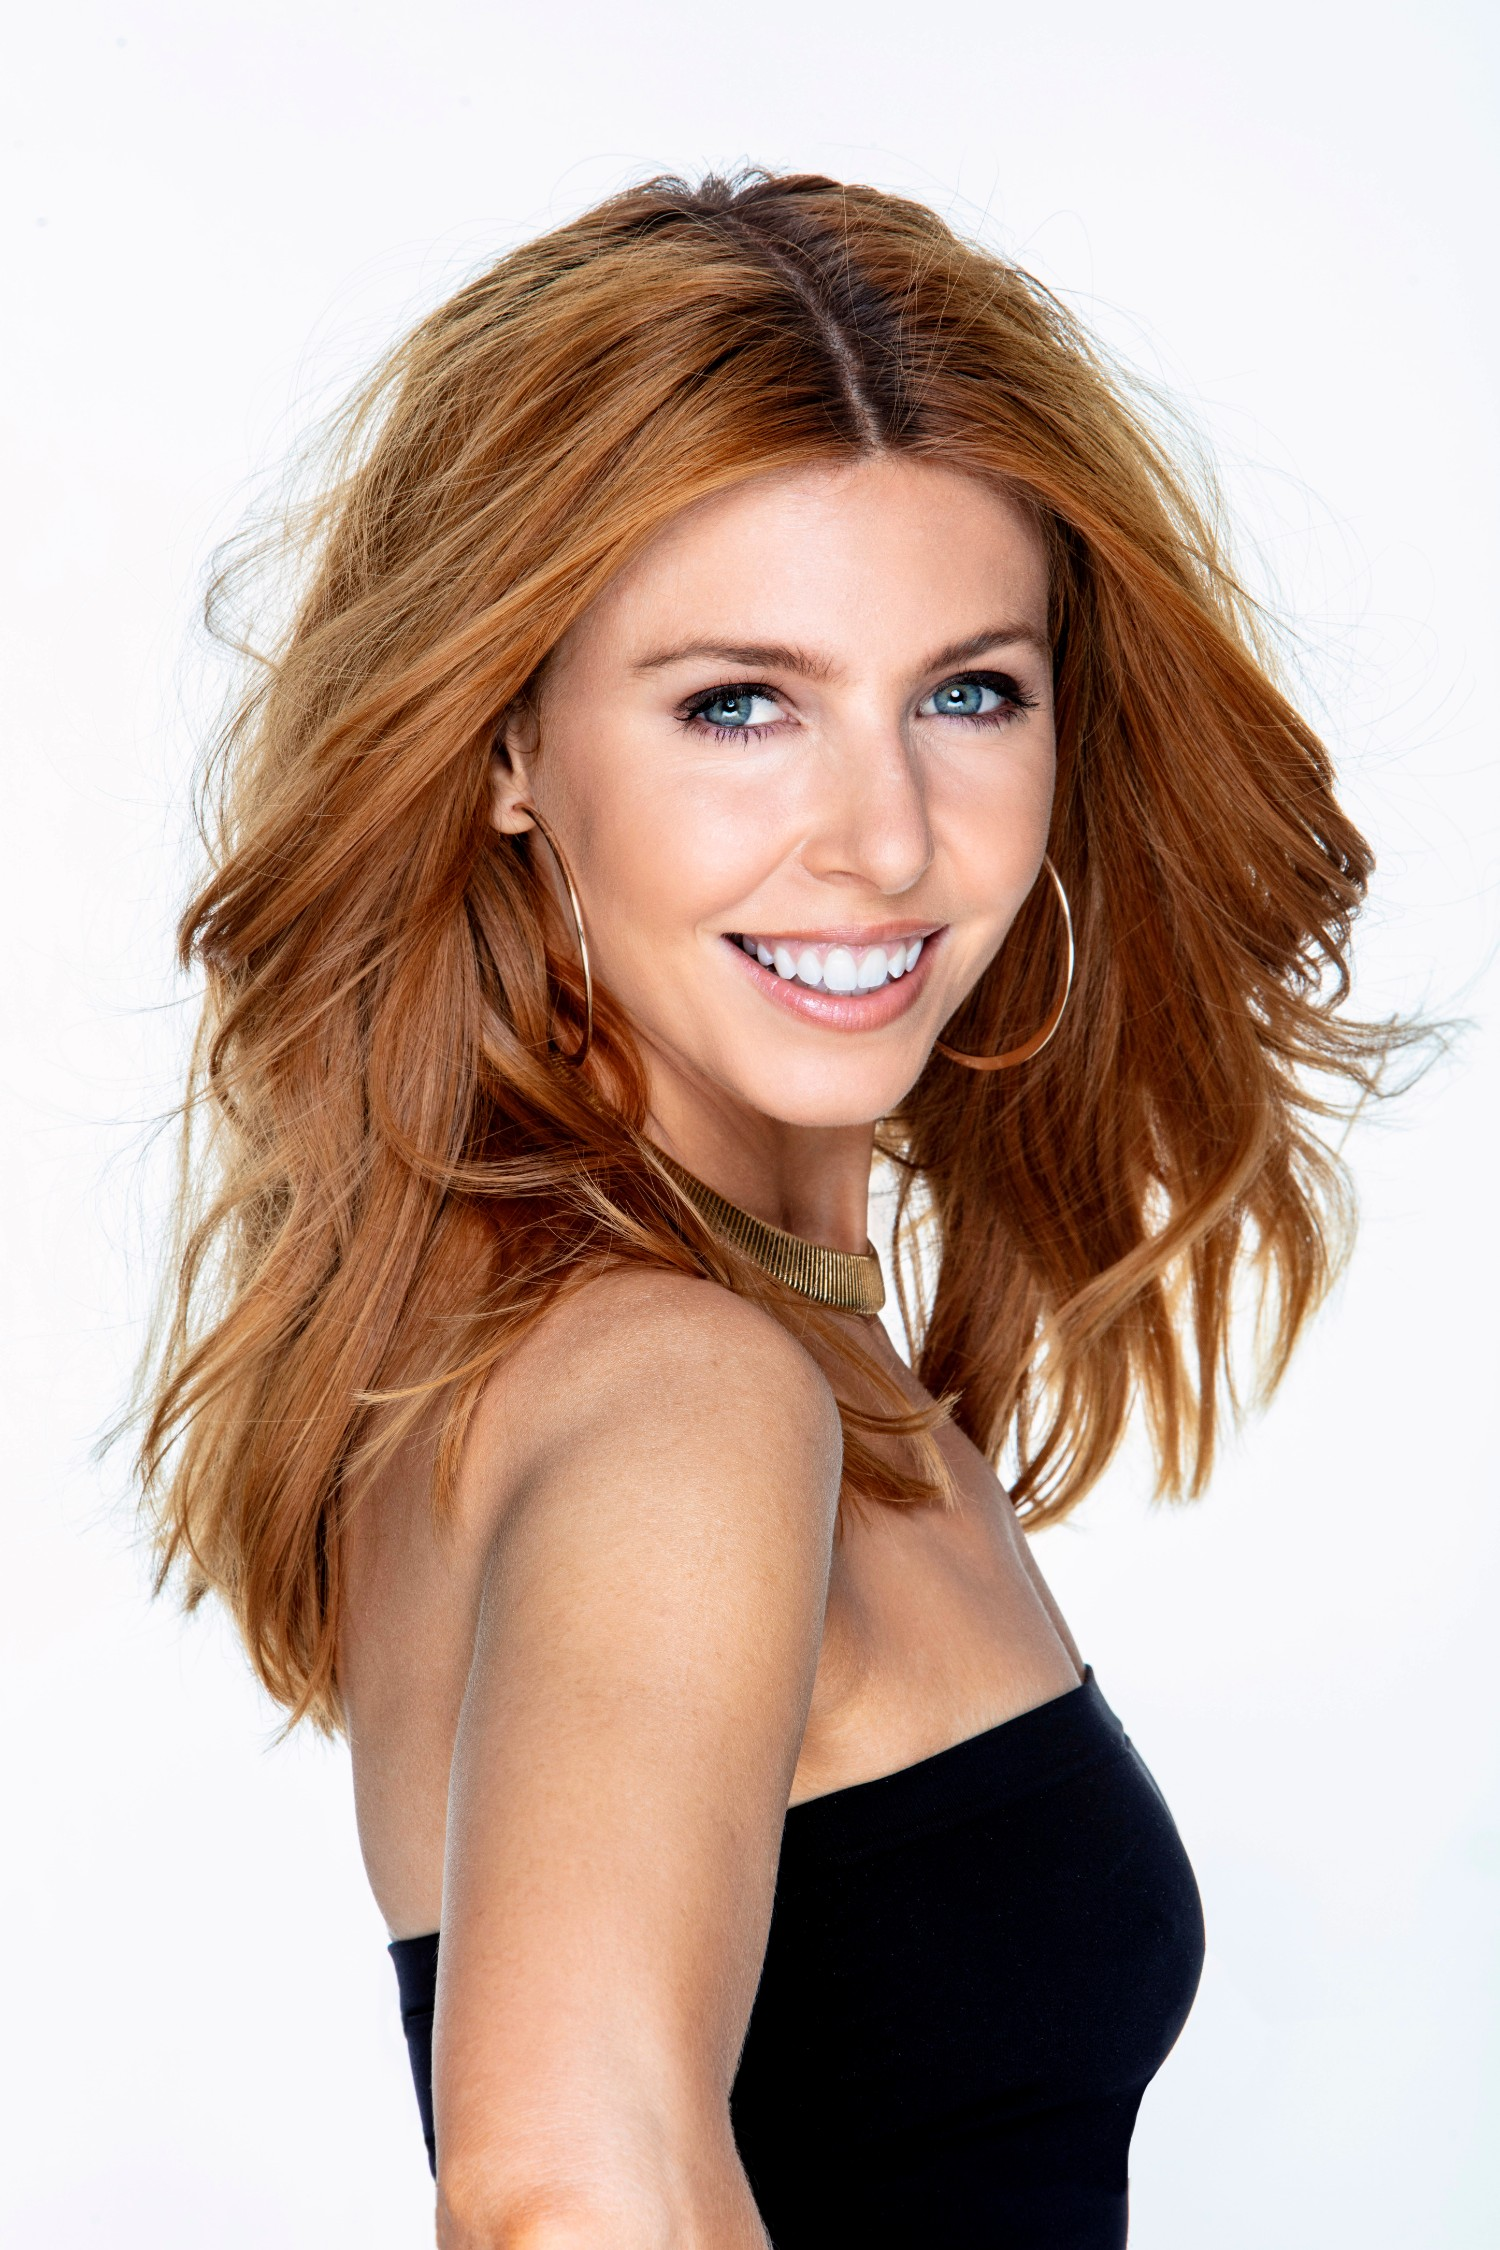 Stacey Dooley To Host 2020 Strictly Arena Tour About Manchester